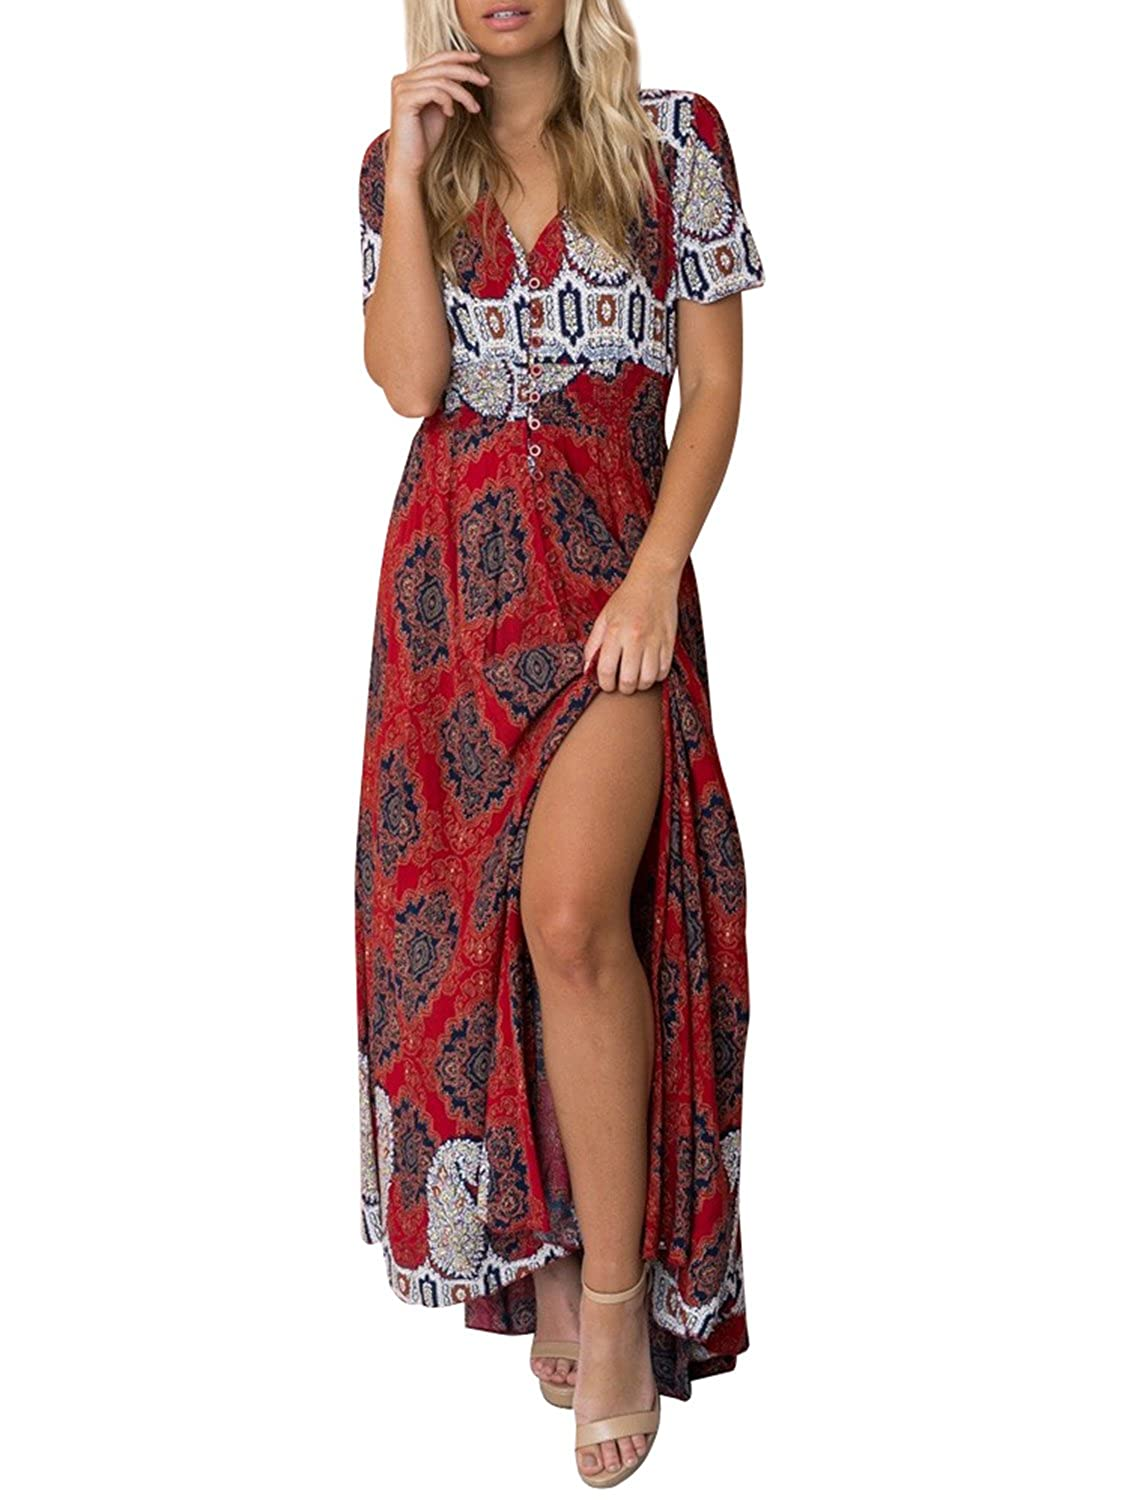 0b8da662b625 Simplee Women's Casual V Neck Floral Print Boho Maxi Dress with Short  Sleeves at Amazon Women's Clothing store: